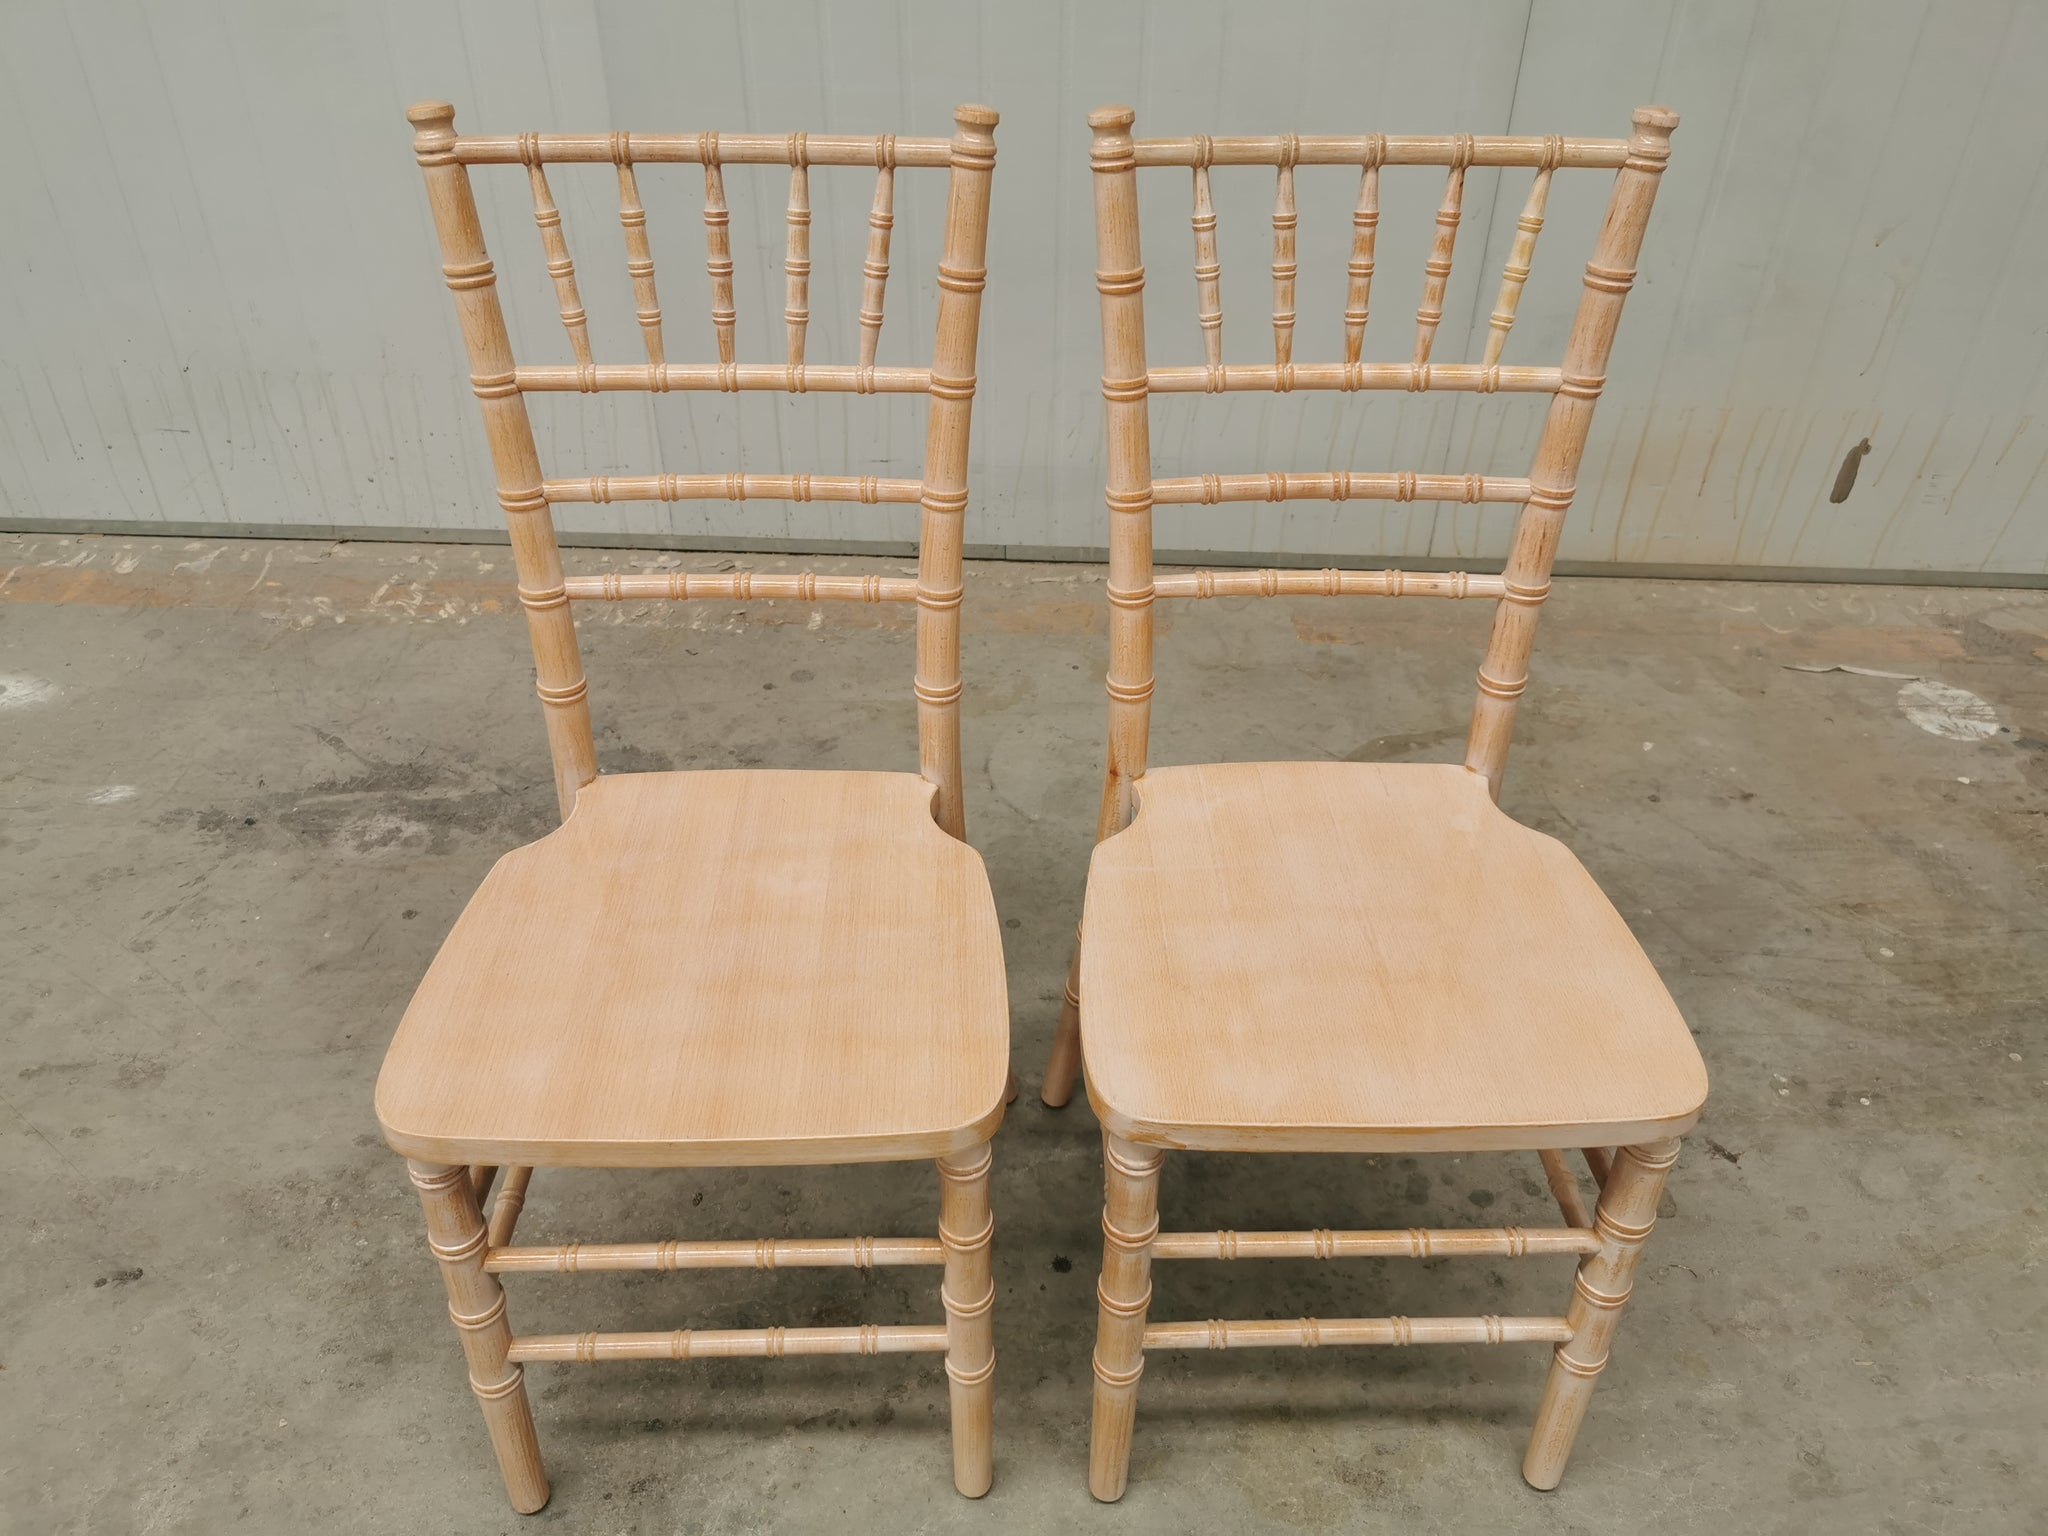 White Wash Tiffany Chair | Timber - Come in boxes of 6 @ $65 each